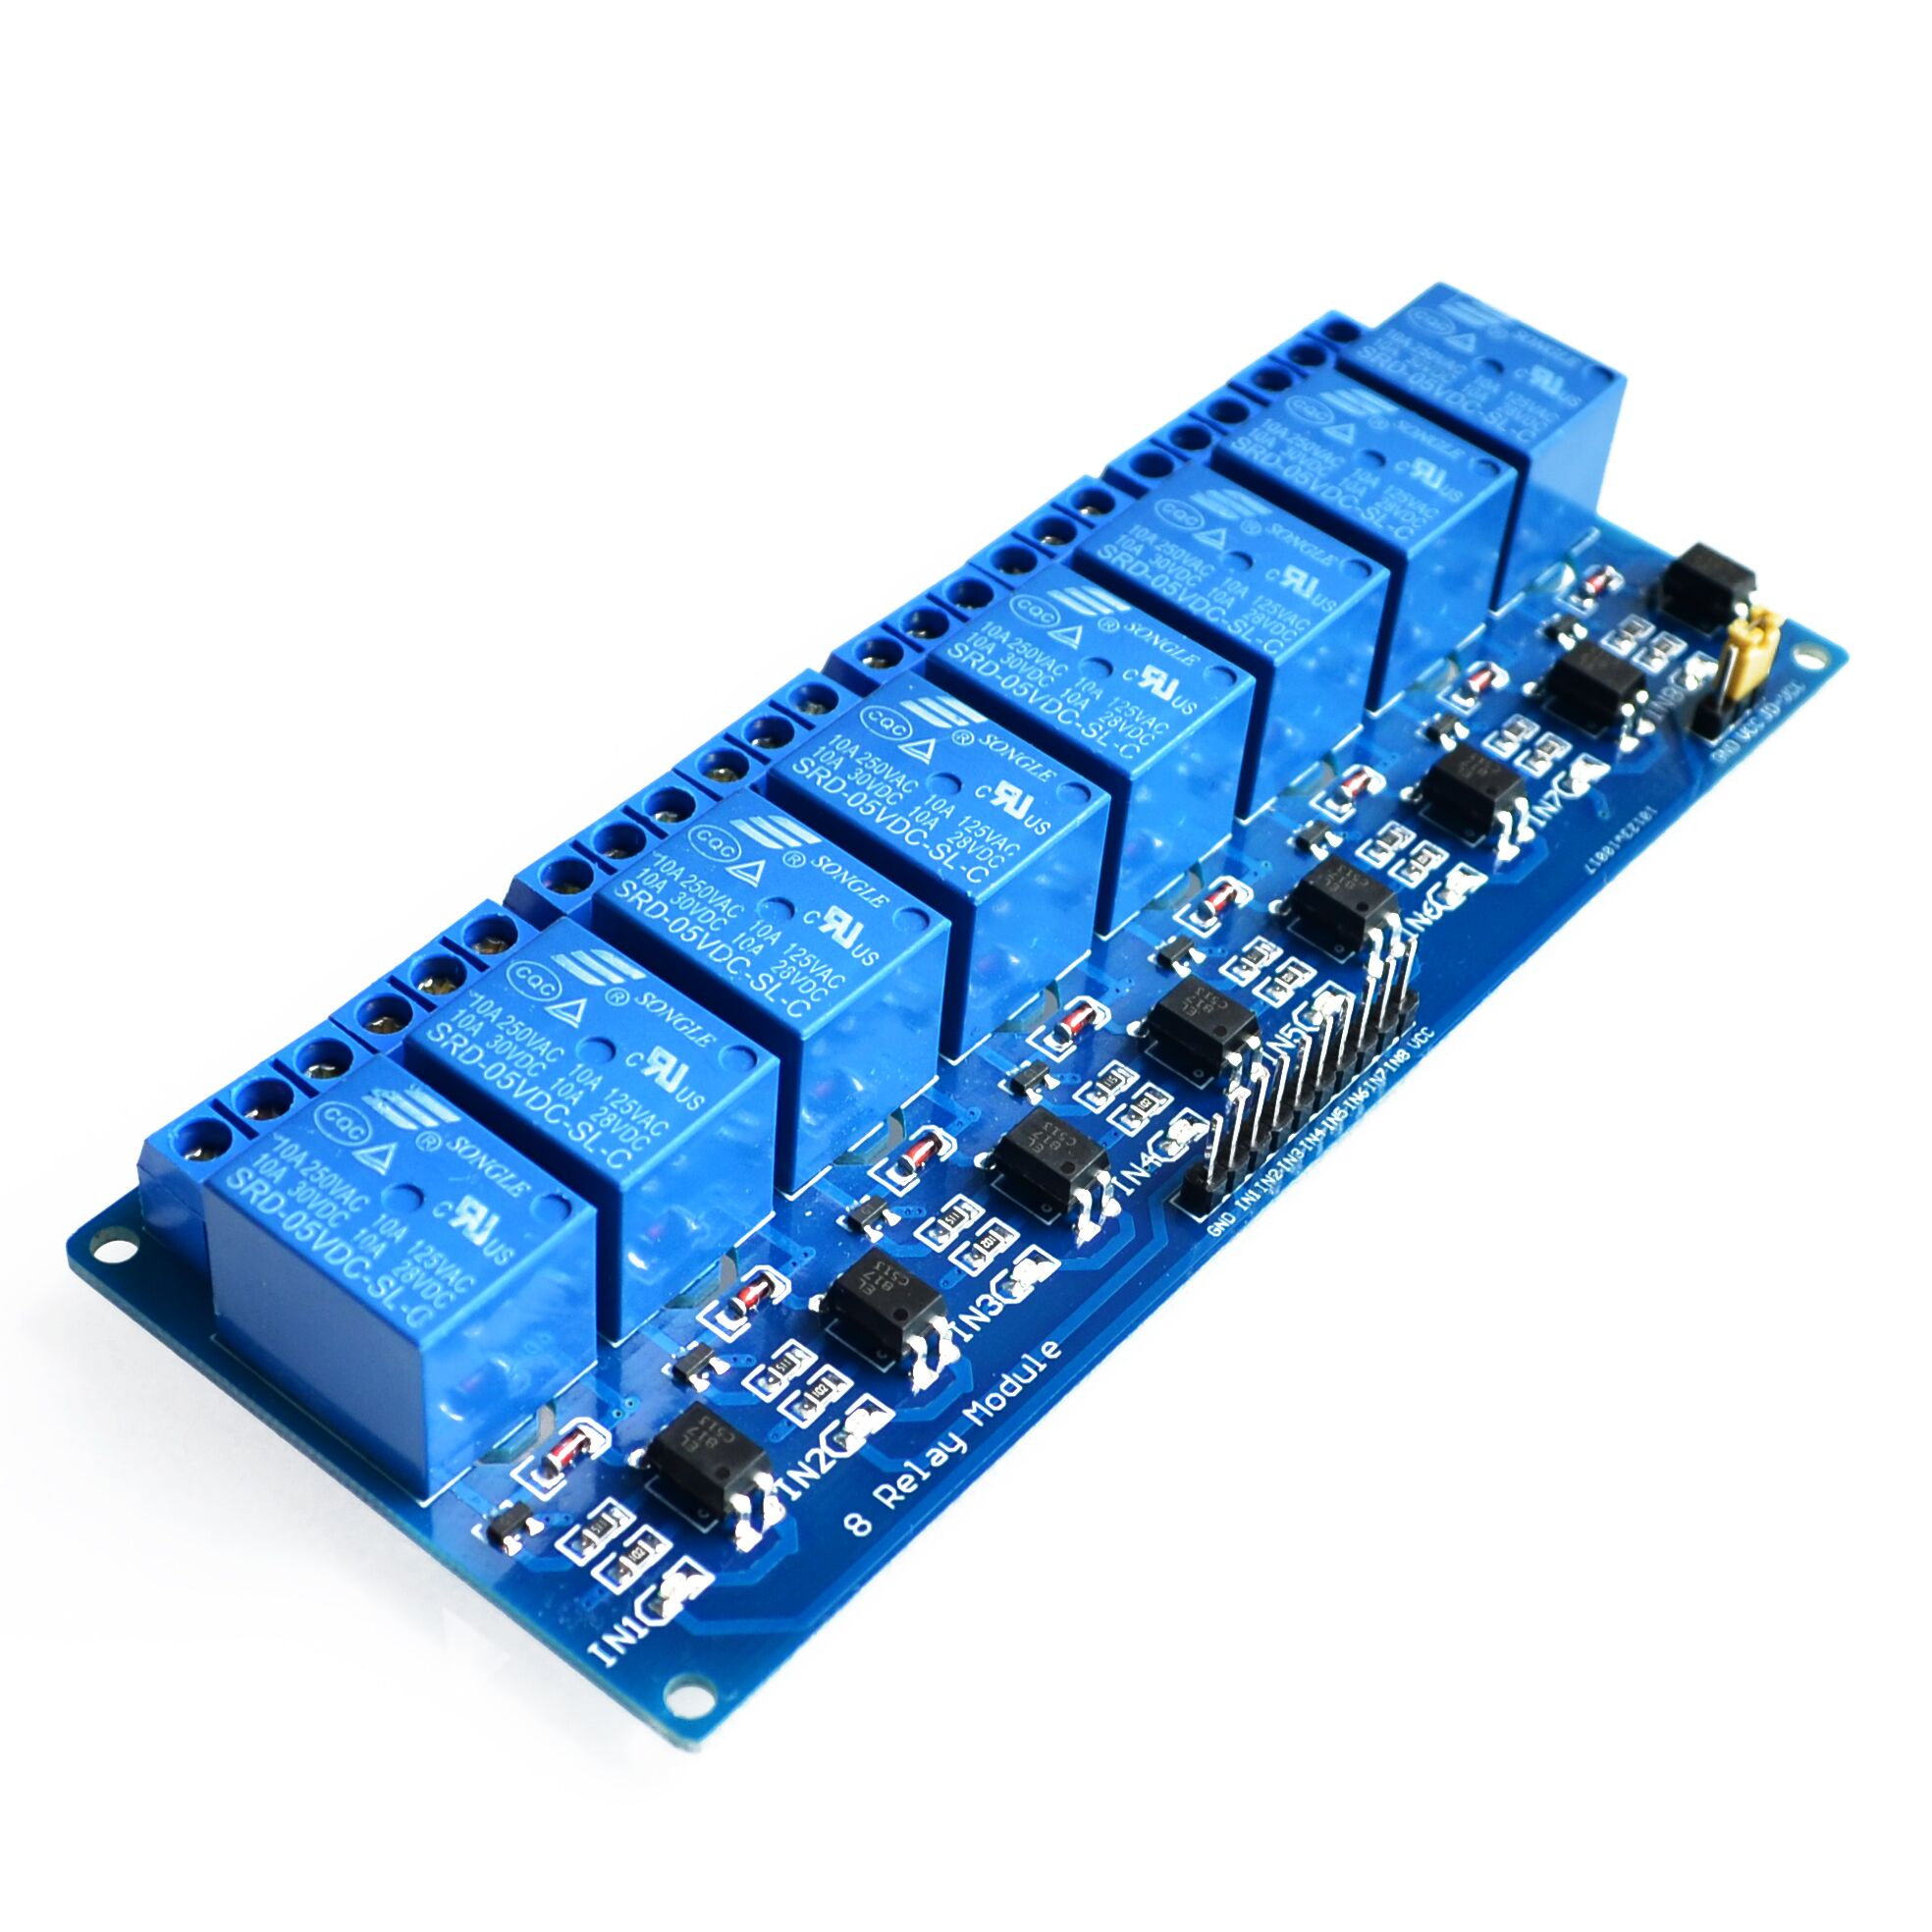 2pcs/lot With optocoupler 8 channel 8-channel relay modules relay control panel PLC relay 5V module